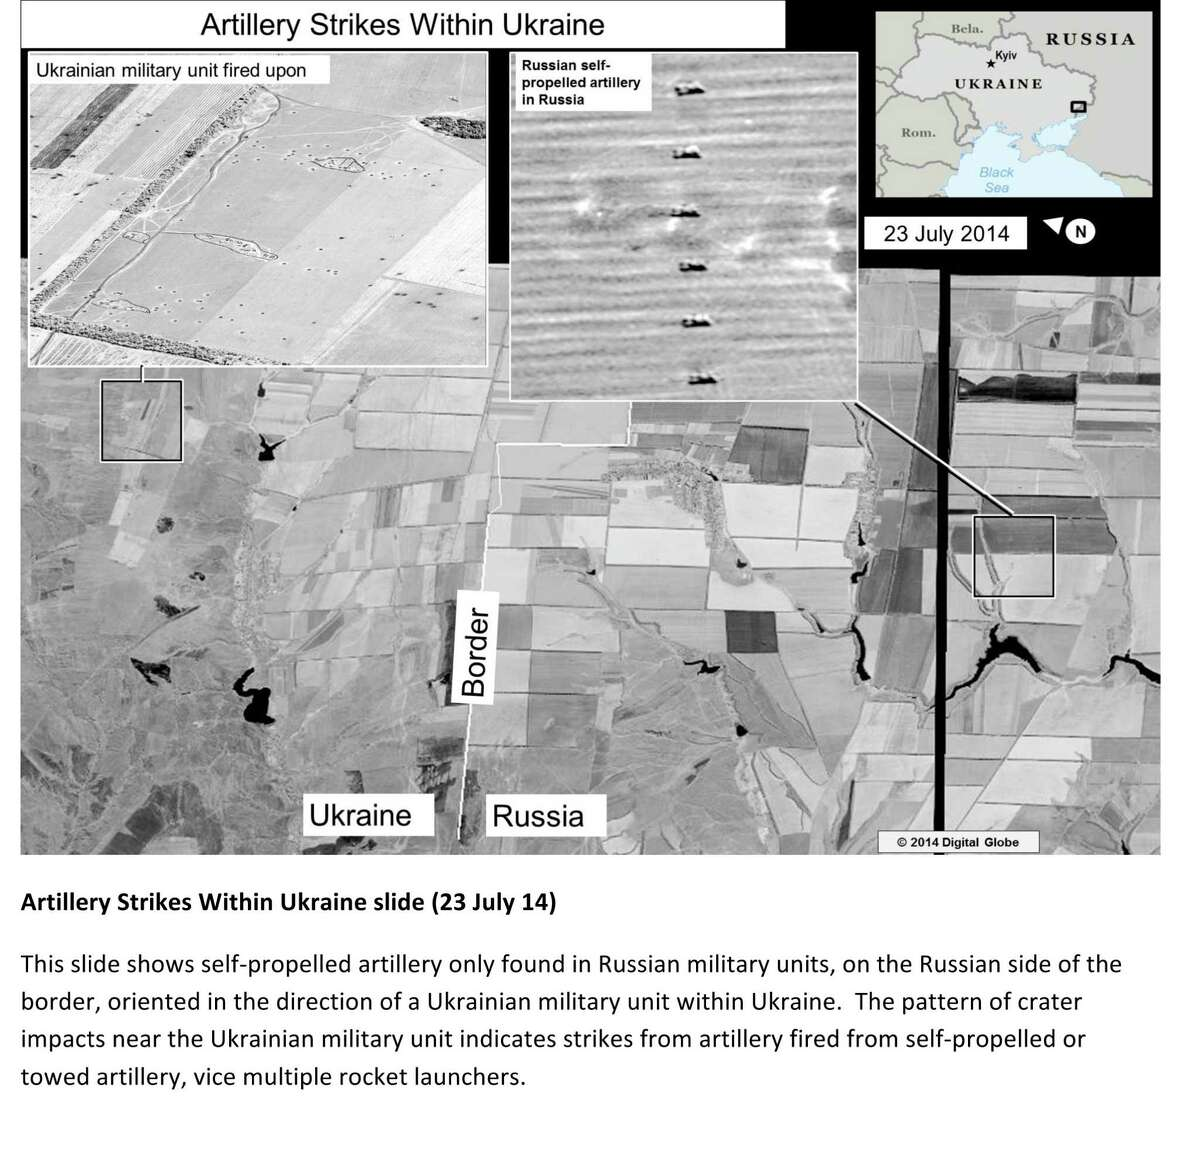 This second page of a four page document released by the U.S. State Department in Washington, July 27, 2014 shows a satellite image that purports to shows self propelled artillery only found in Russian military units, on the Russian side of the border, oriented in the direction of a Ukrainian military unit within Ukraine. The United States says the images back up its claims that rockets have been fired from Russia into eastern Ukraine and heavy artillery for separatists has also crossed the border.AP story: The U.S. State Department, meanwhile, released satellite images that it says back up its claims that rockets have been fired from Russia into eastern Ukraine and heavy artillery for separatists has also crossed the border.